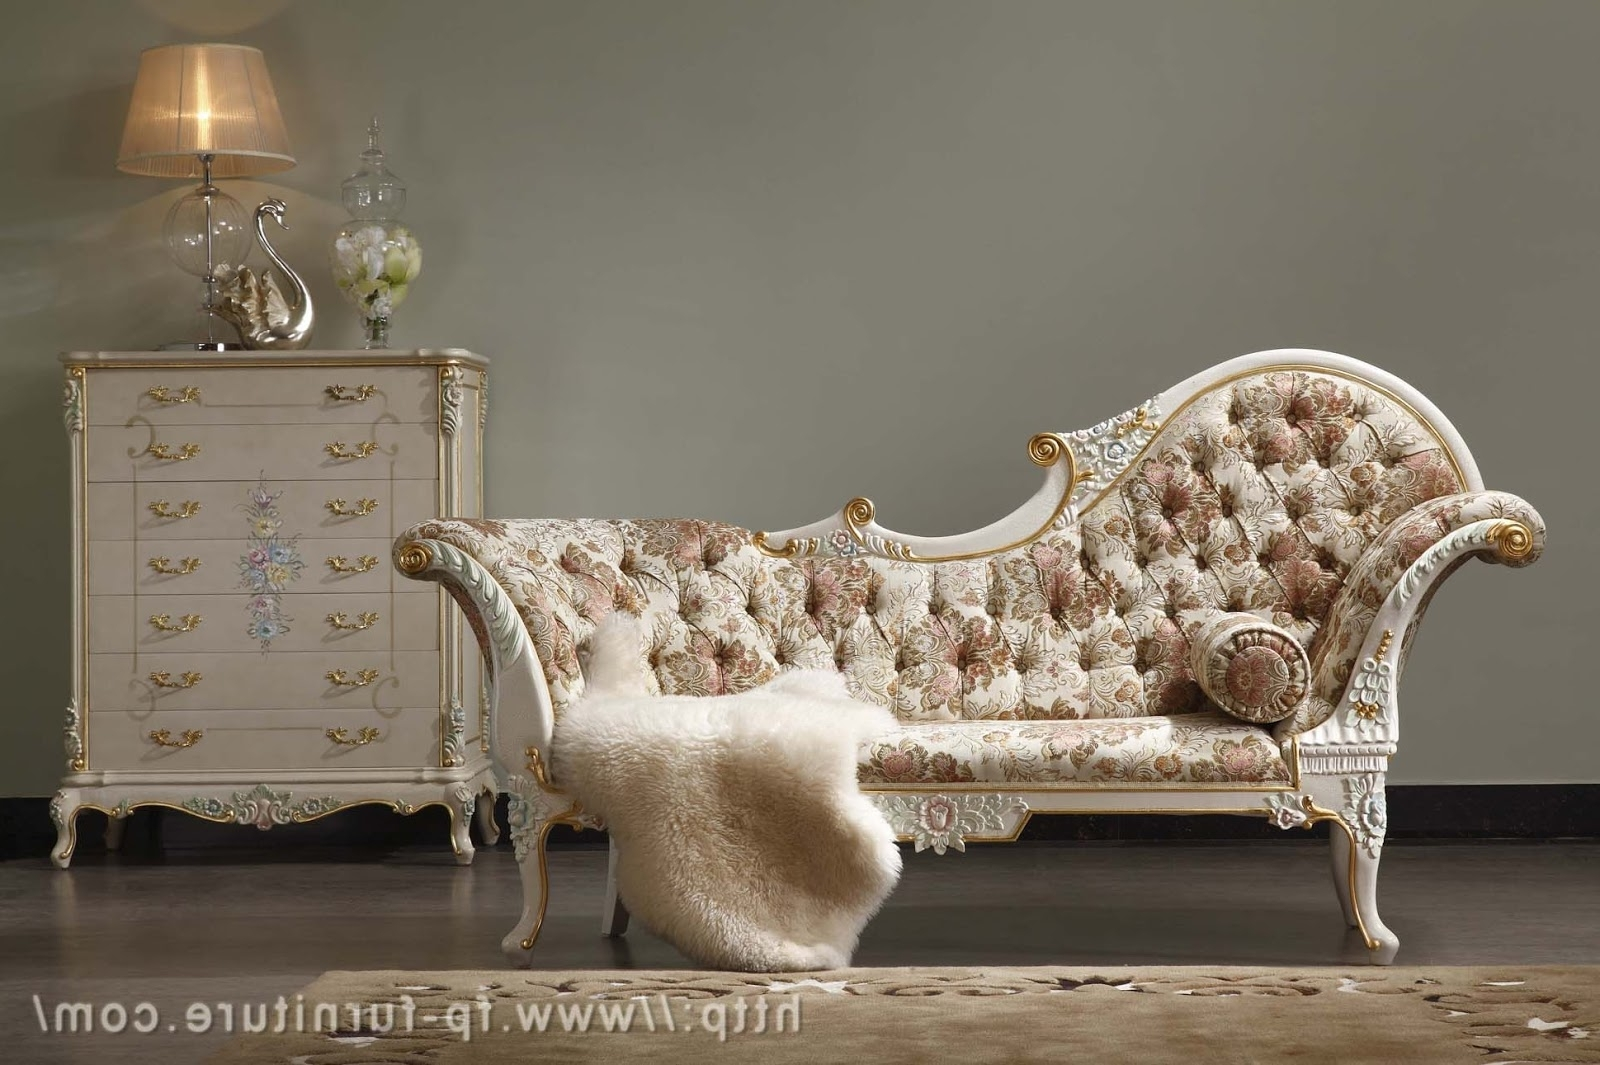 Most Recent Filiphs Palladio: Italian Classic Hand Carved Royal Furniture With Regard To European Chaise Lounge Chairs (View 3 of 15)